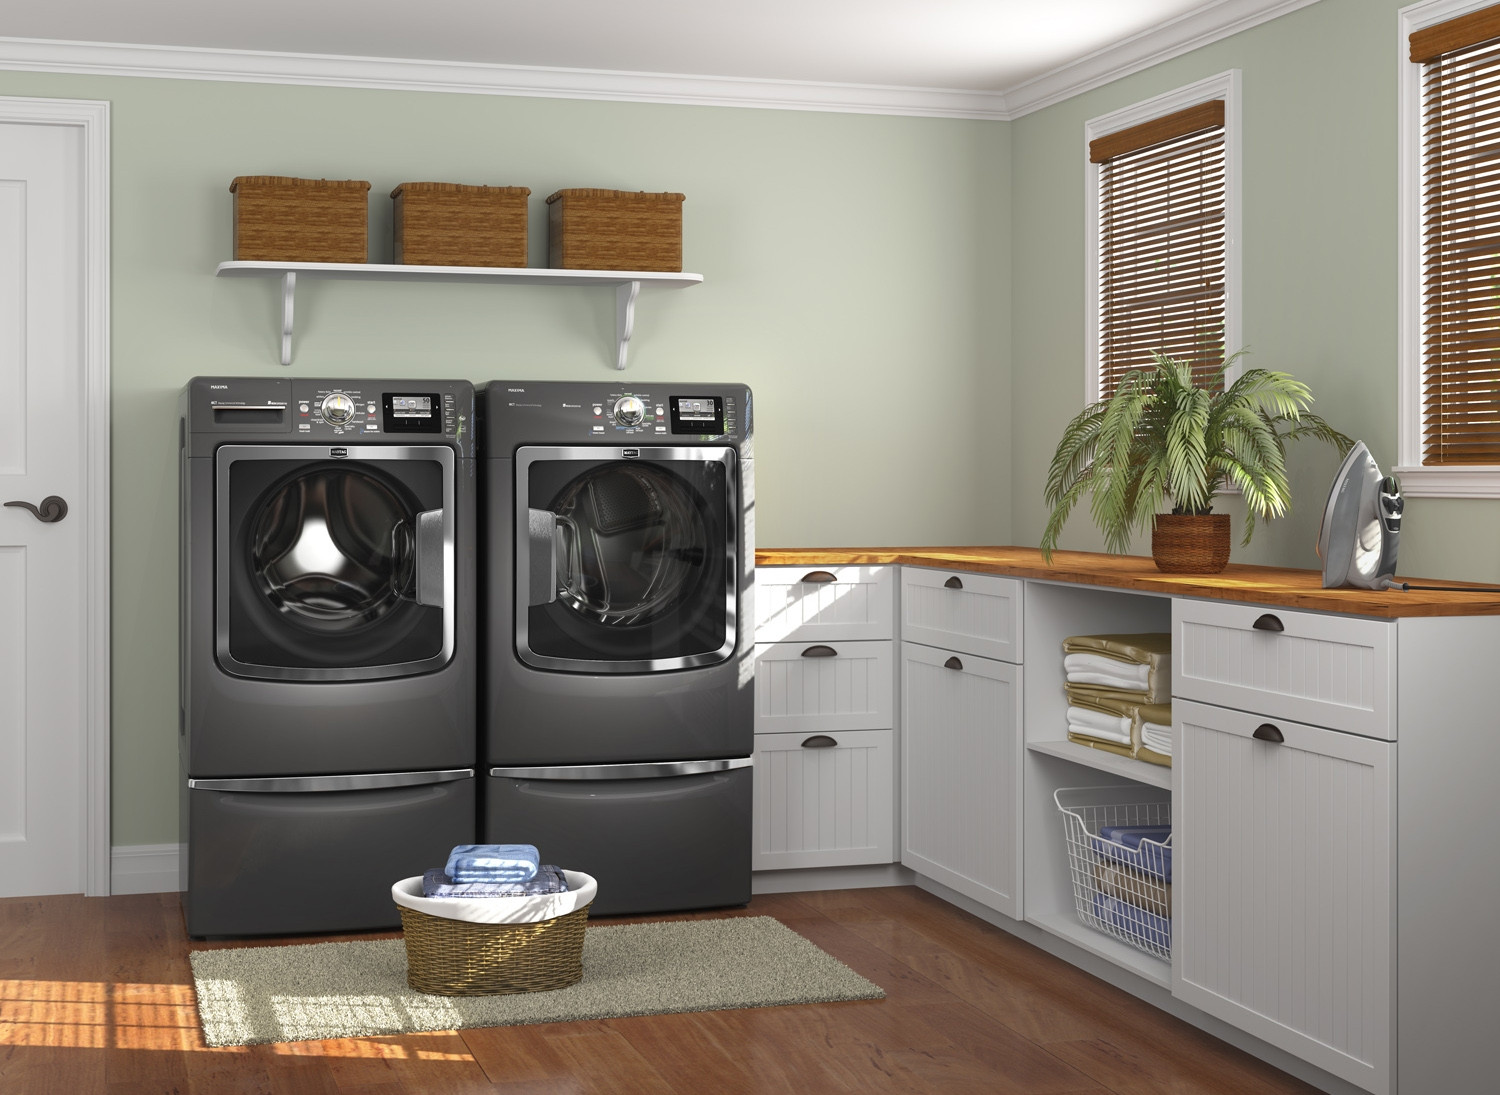 Best ideas about Laundry Room Images . Save or Pin 15 Tips to Creating a Laundry Room that's both Charming Now.